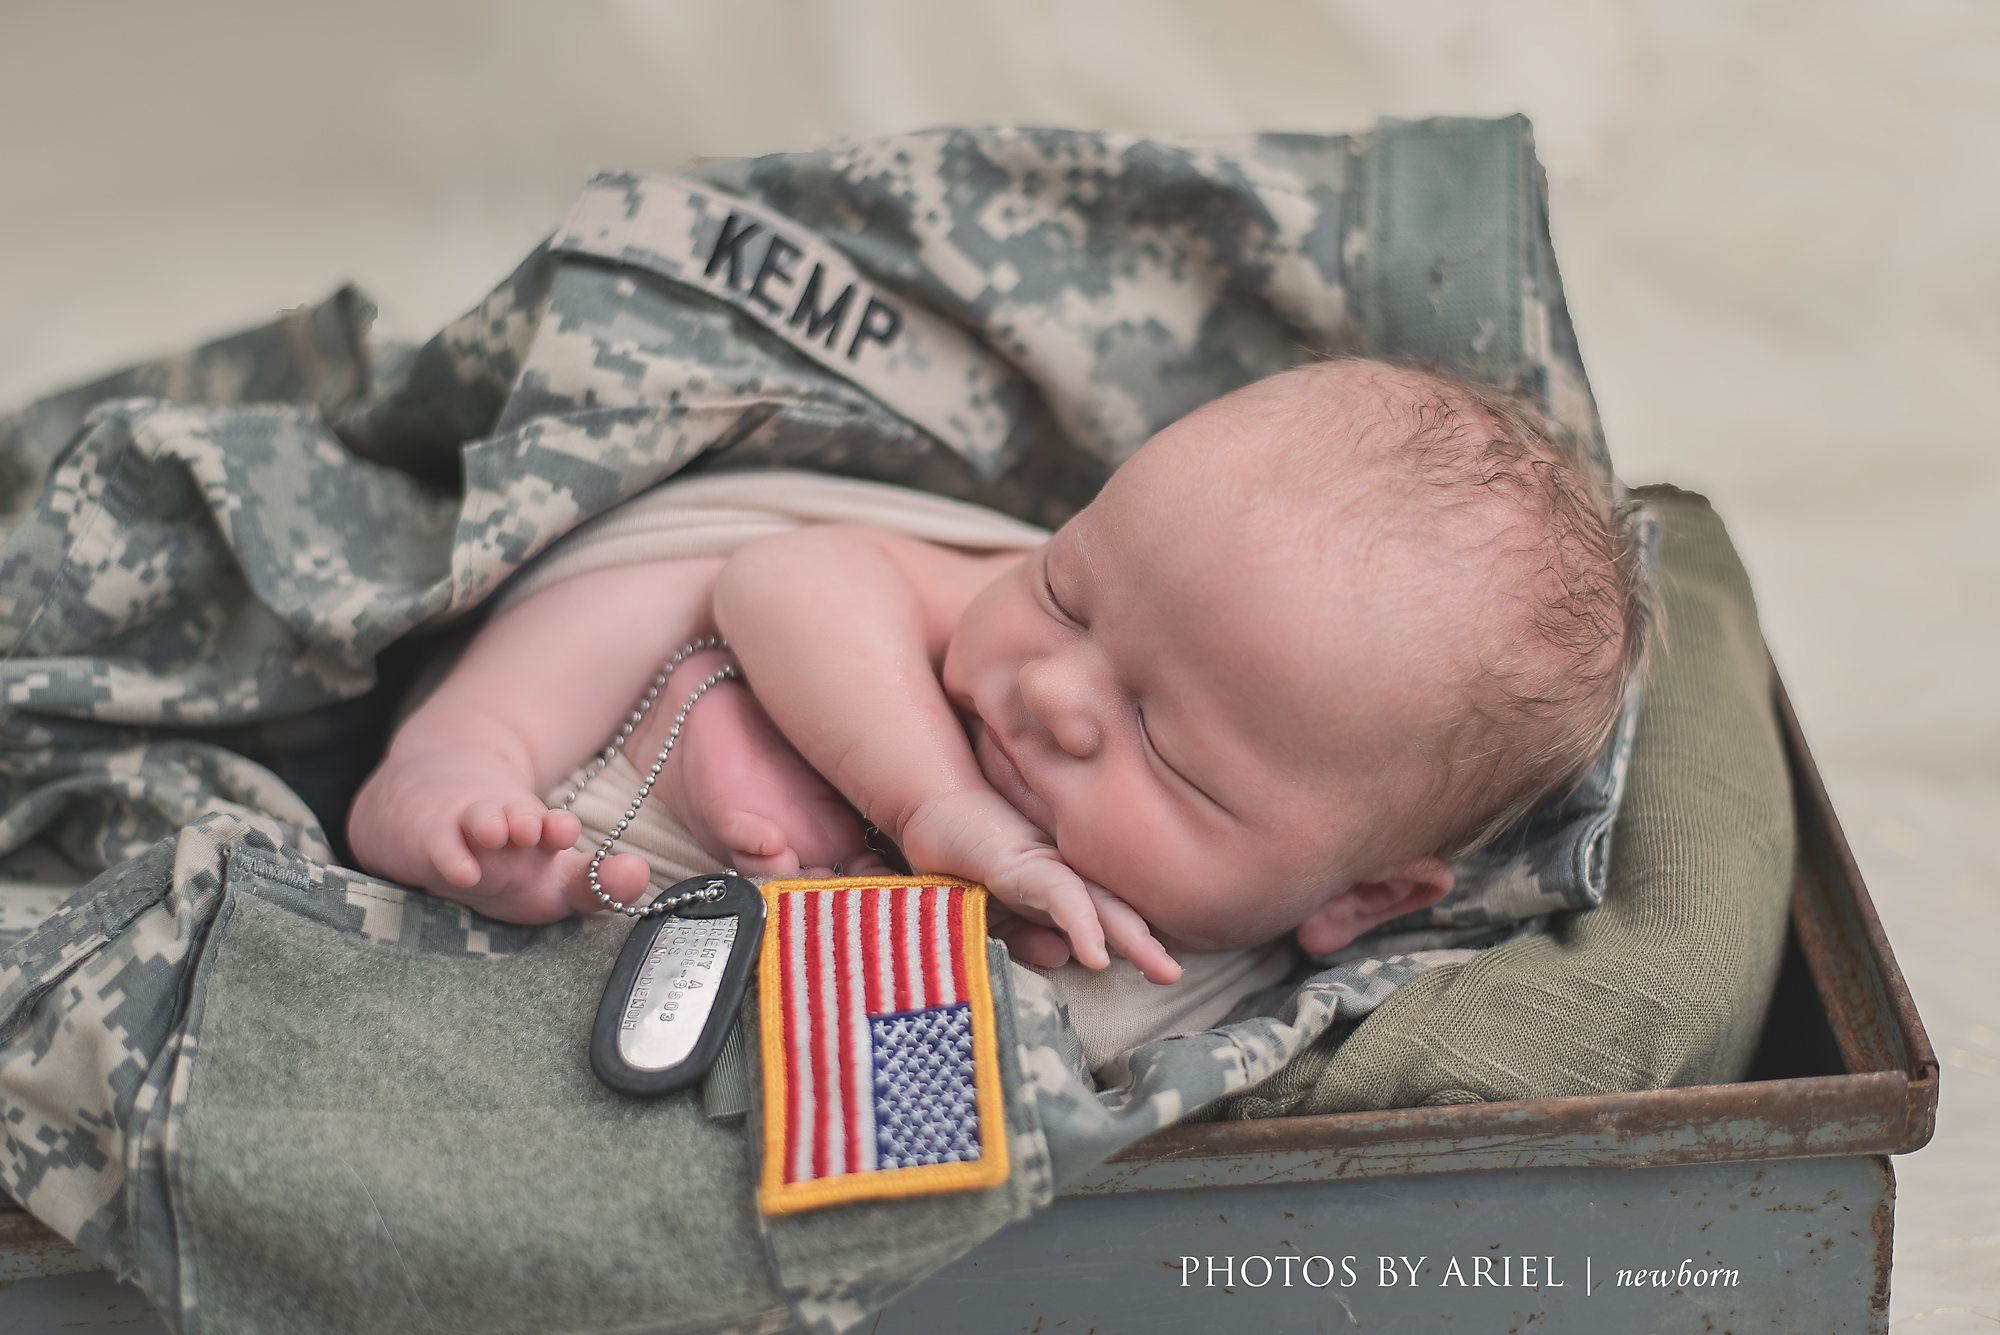 Illinois newborn photographer, central Illinois newborn photographer, newborn session sneak peak, baby boy in military gear, Lincoln Illinois newborn photographer, Bloomington Illinois newborn photographer, normal Illinois newborn photographer, springfield Illinois newborn photographer, Peoria Illinois newborn photographer, Decatur Illinois newborn photographer, photos by ariel, baby boy, family of four newborn photos, newborn photography blog, photographer blog